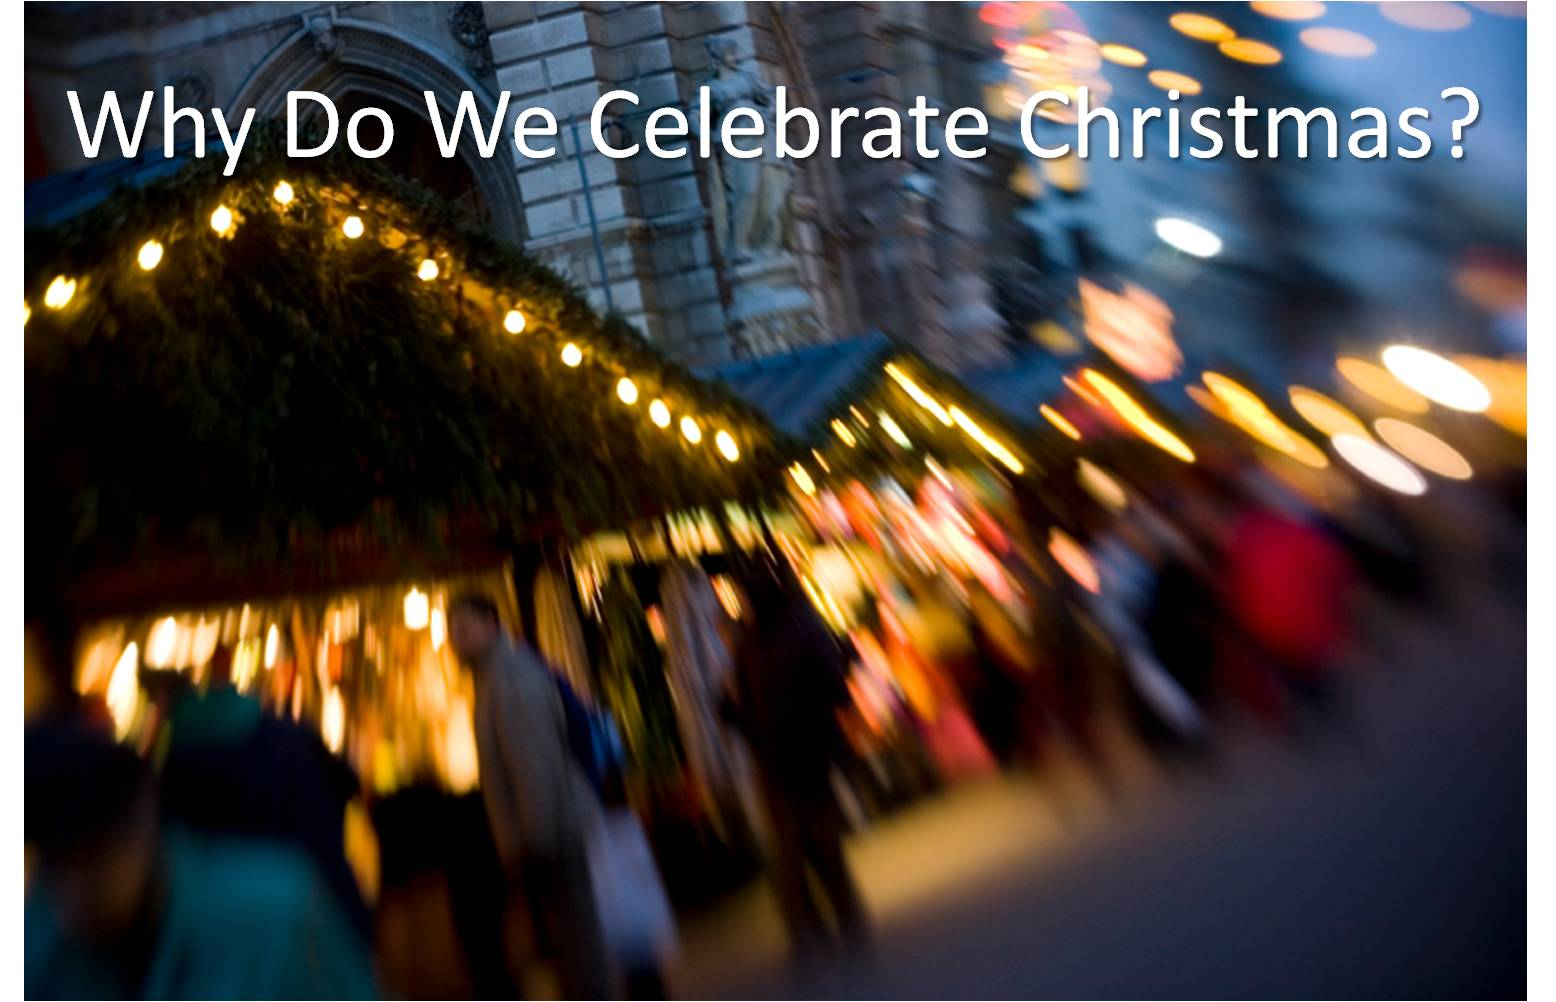 Why Do We Celebrate Christmas  Part 1 Windham Baptist Church BLOG uBRhtGRG